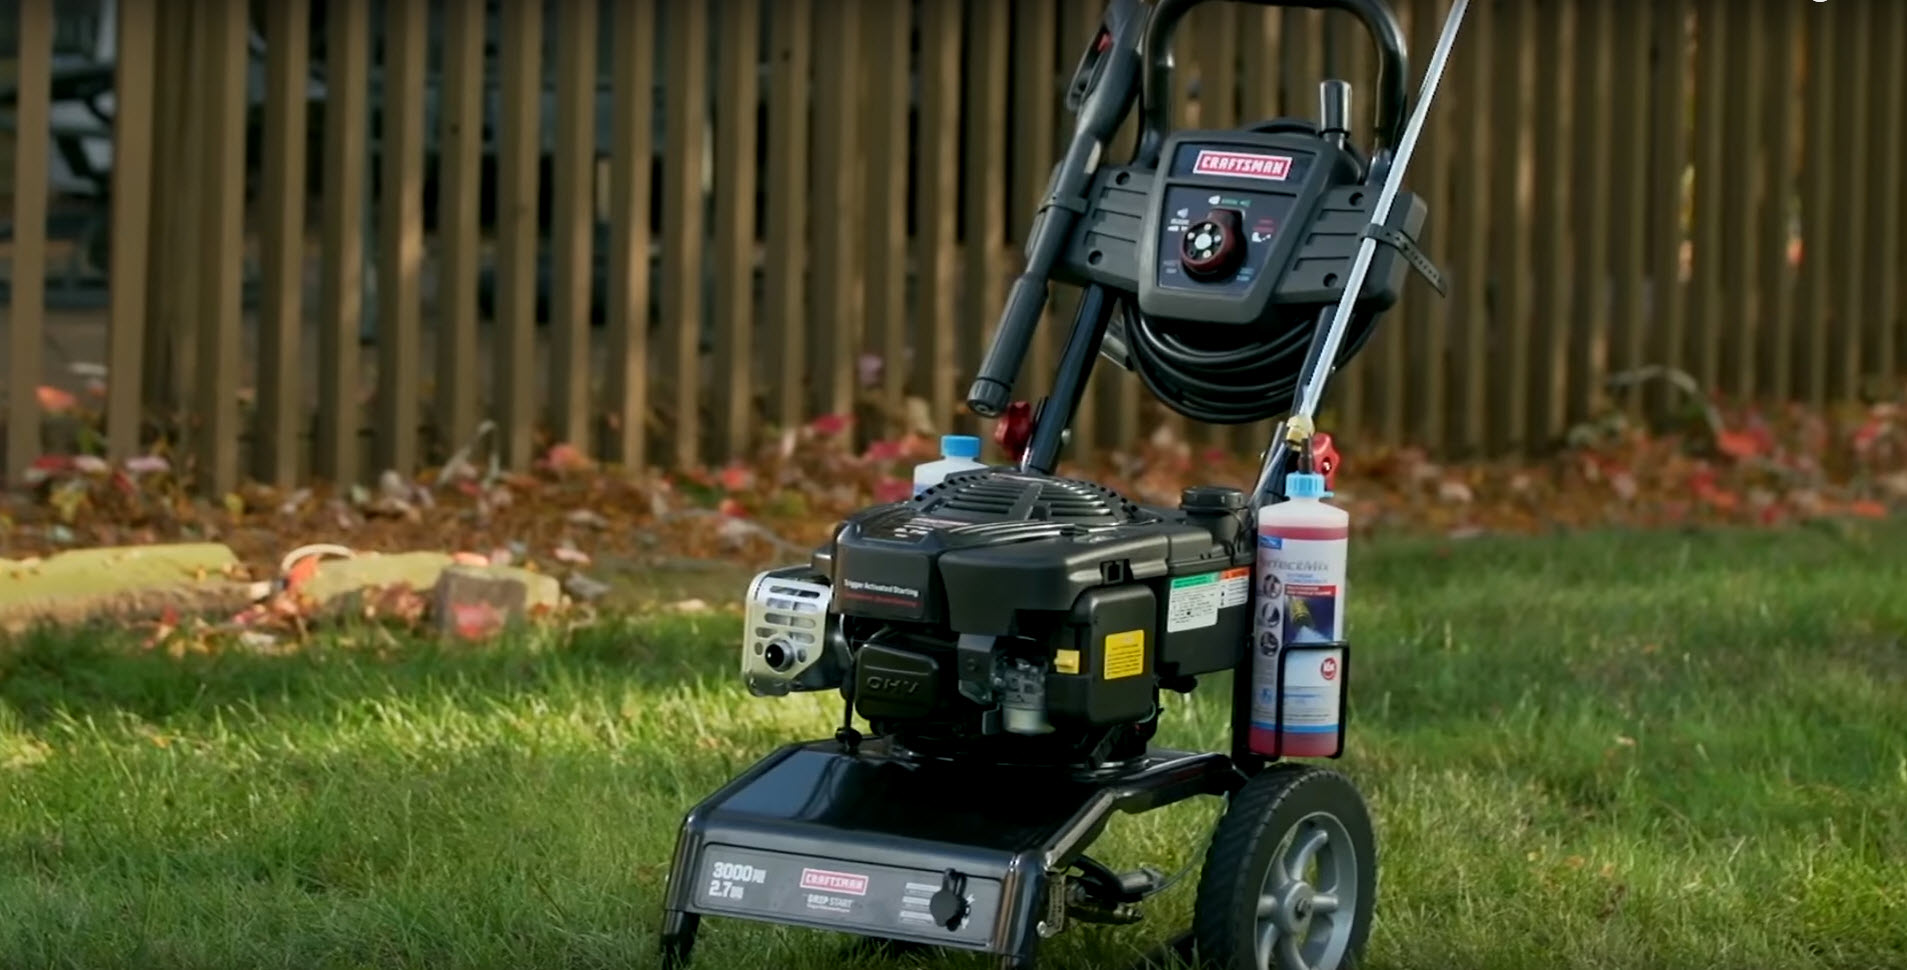 Common pressure washer problems - smoke coming out of the